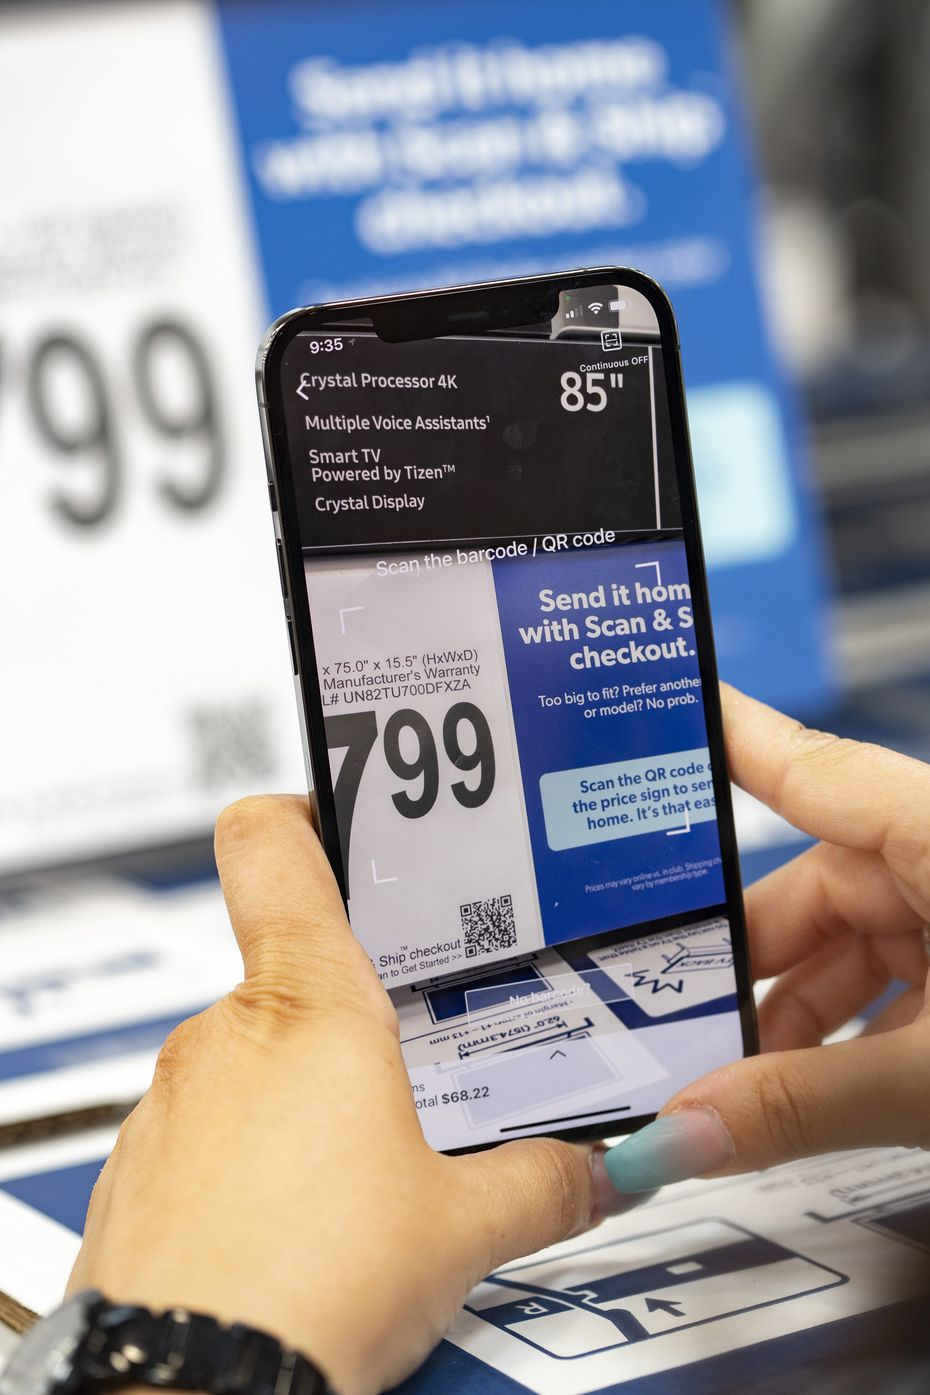 Customers complete the purchase using the Sam's Scan & Go app on their phones.